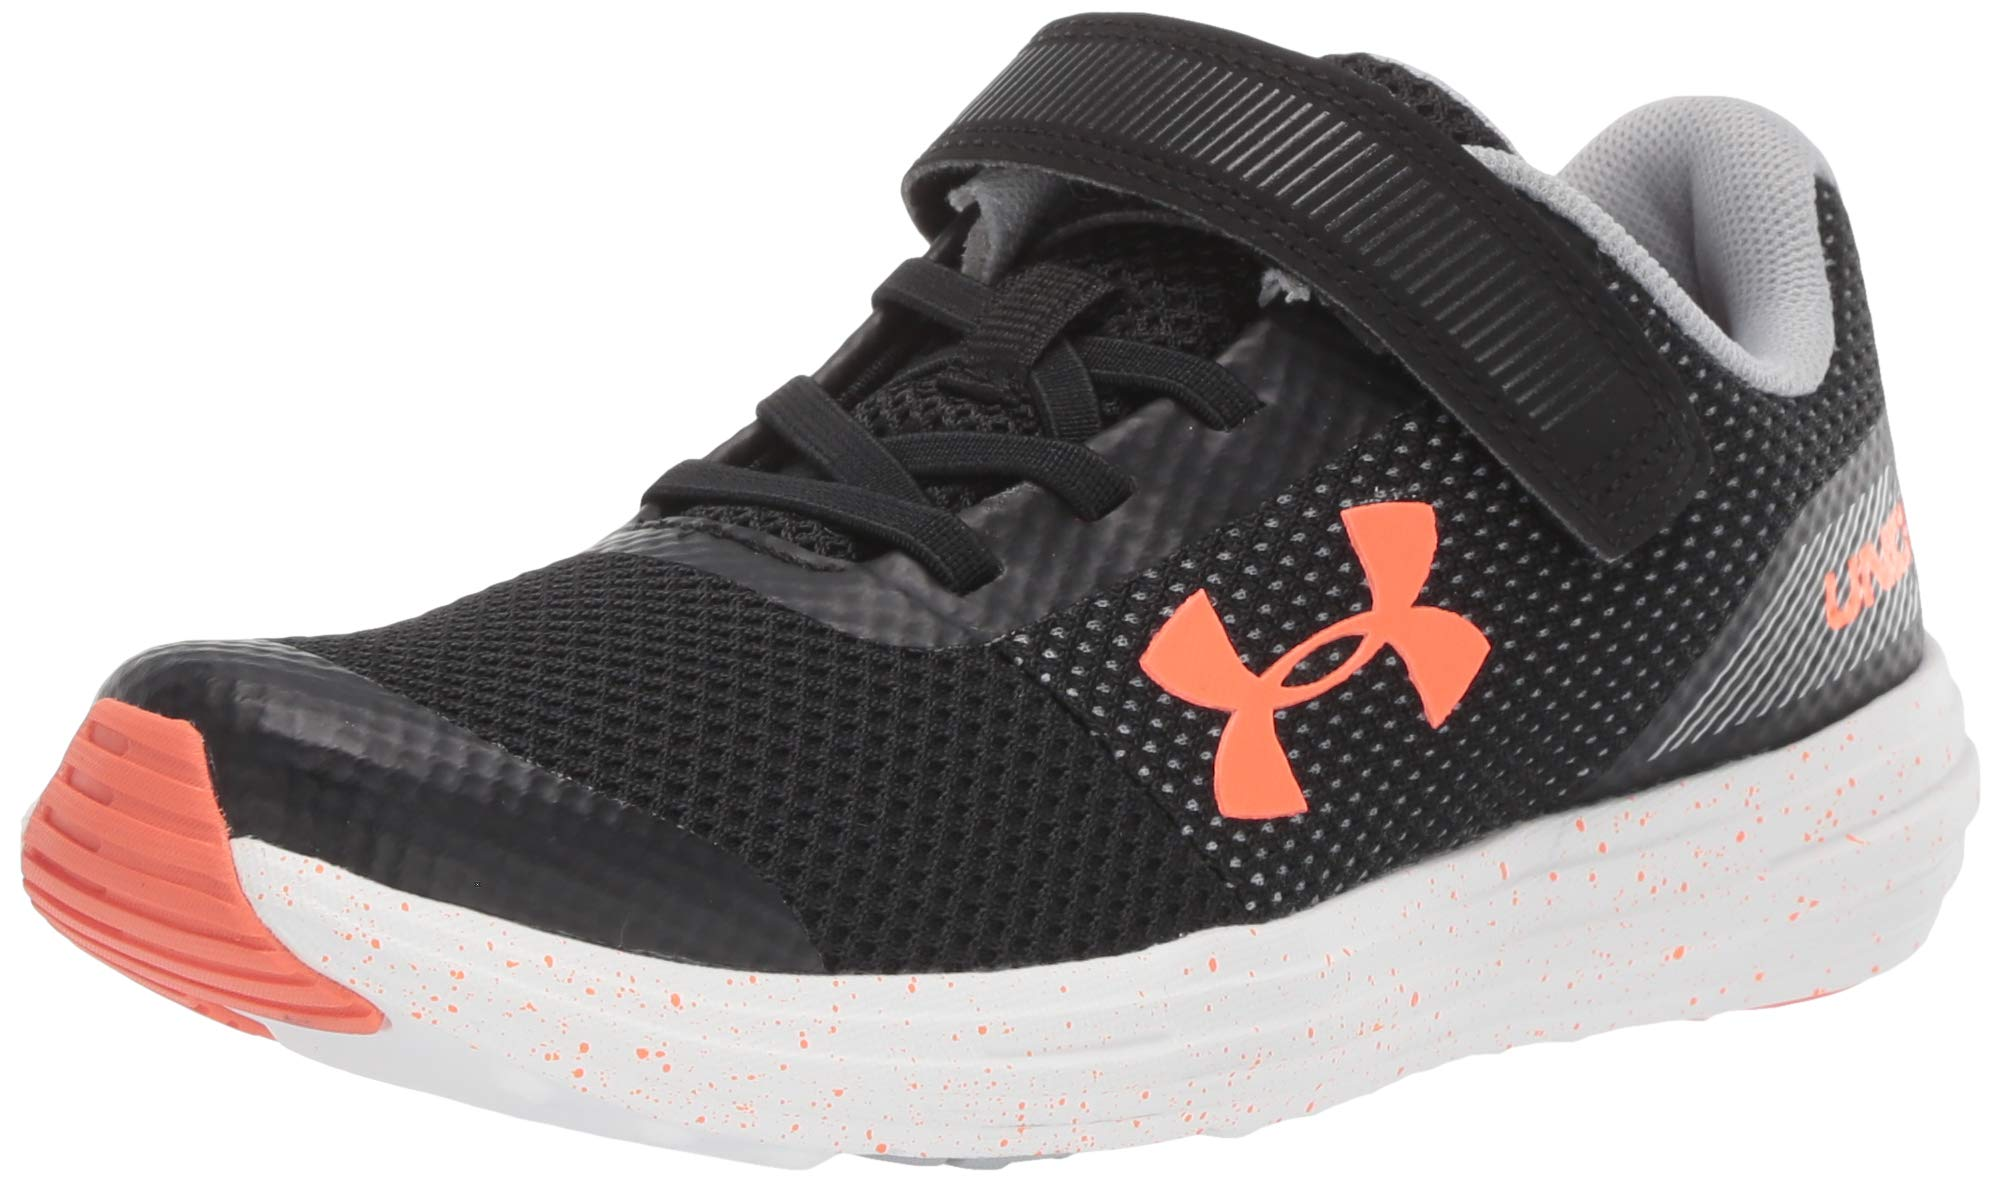 Under Armour Boys' Pre School Surge RN Alternate Closure Sneaker, Black (003)/White, 1